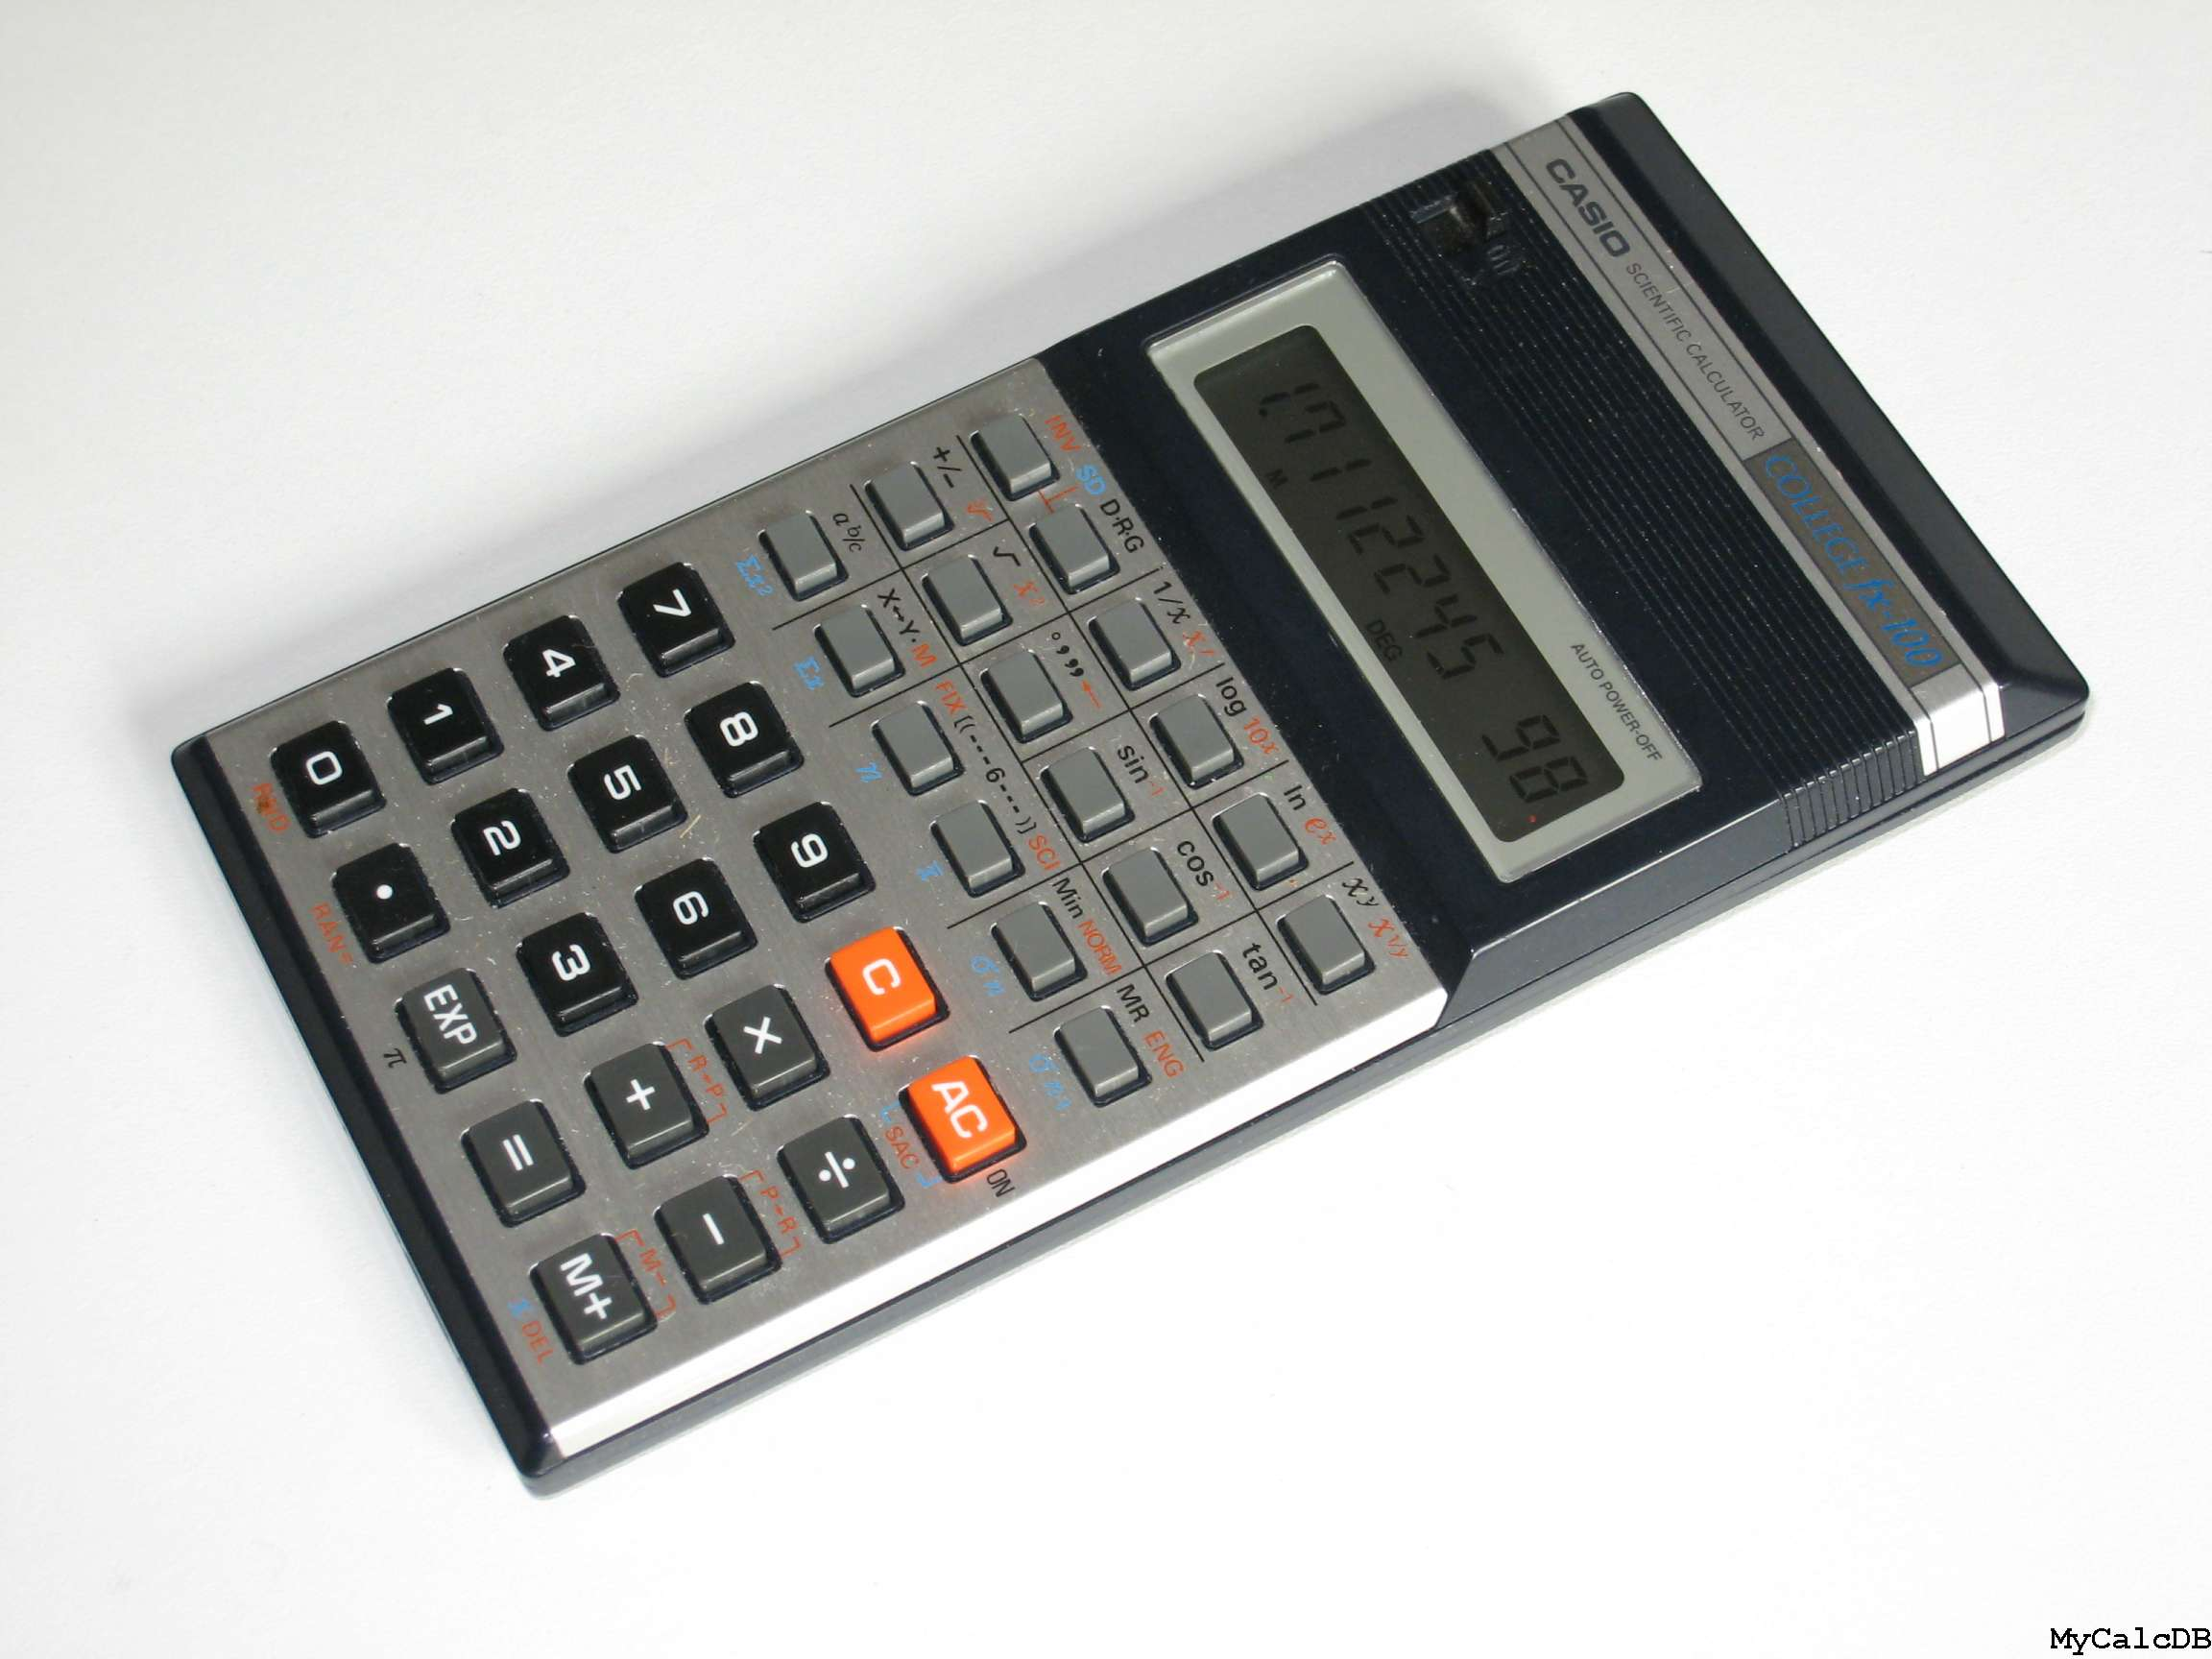 Casio COLLEGE fx-100